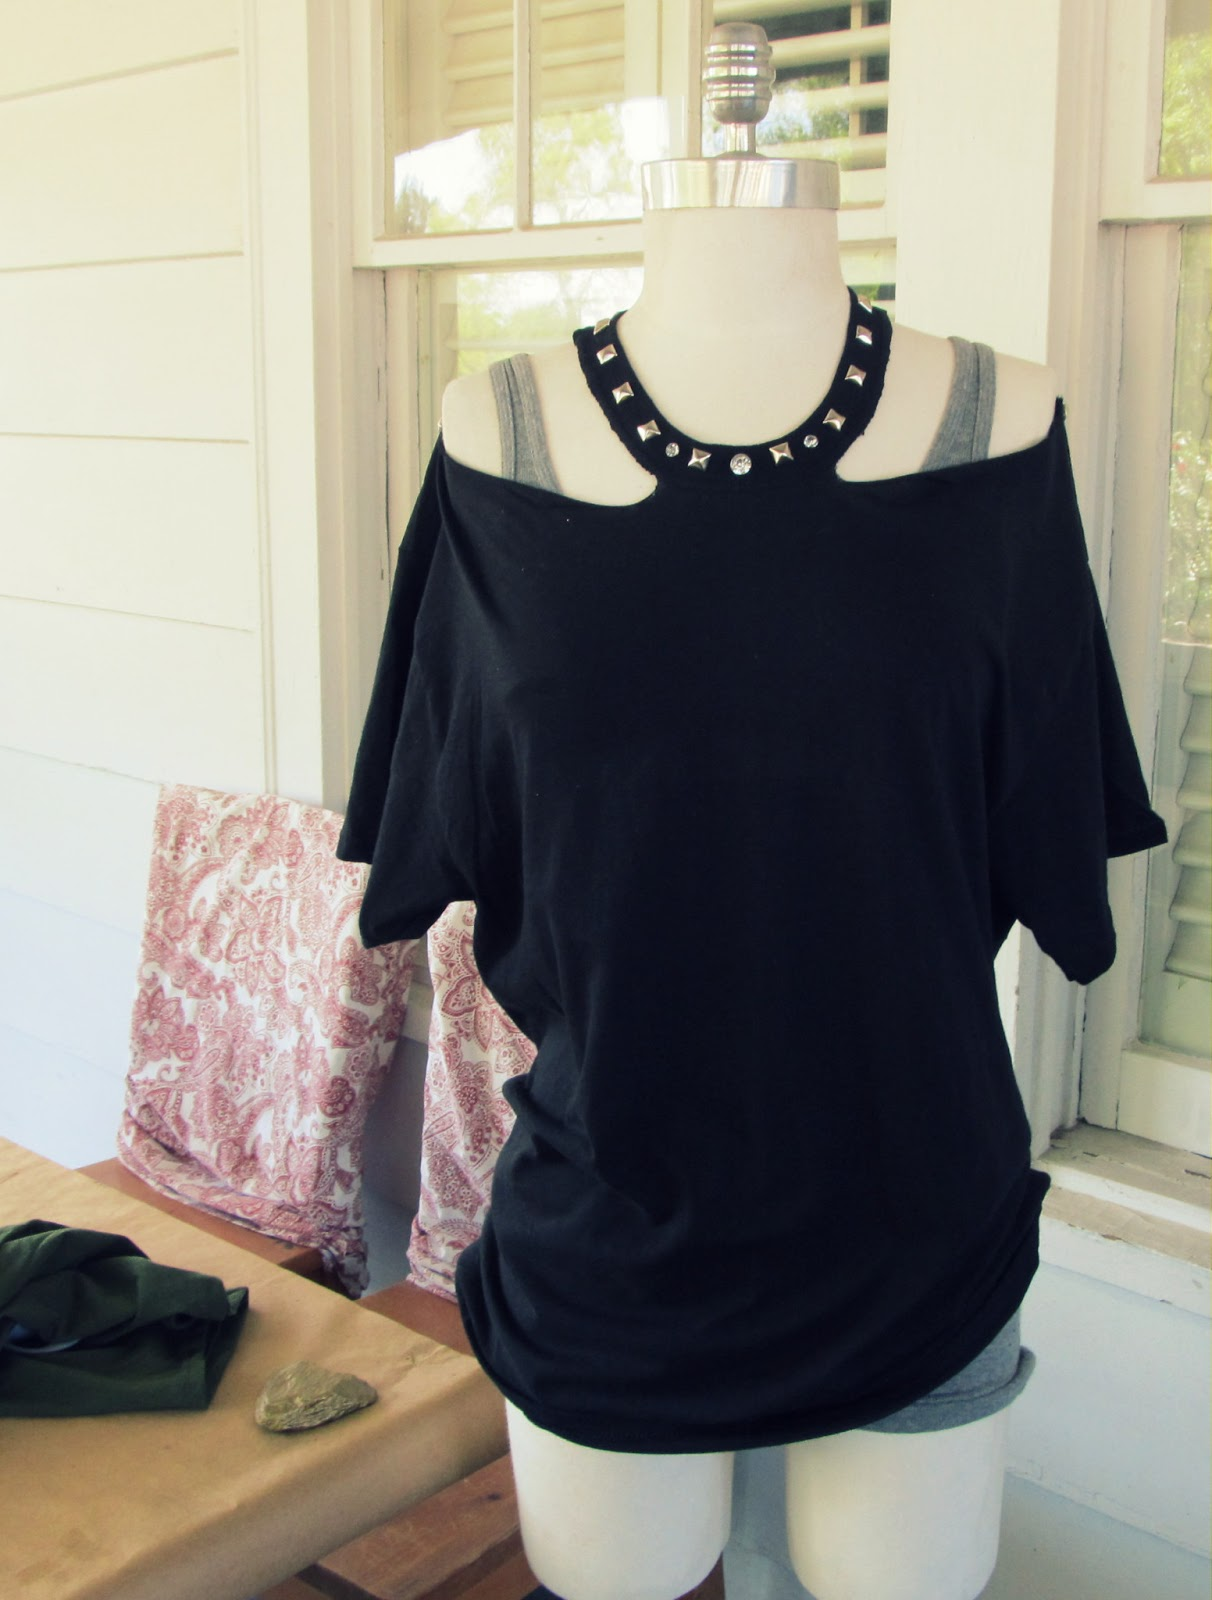 wobisobi no sew jewelled halter t shirt diy. Black Bedroom Furniture Sets. Home Design Ideas